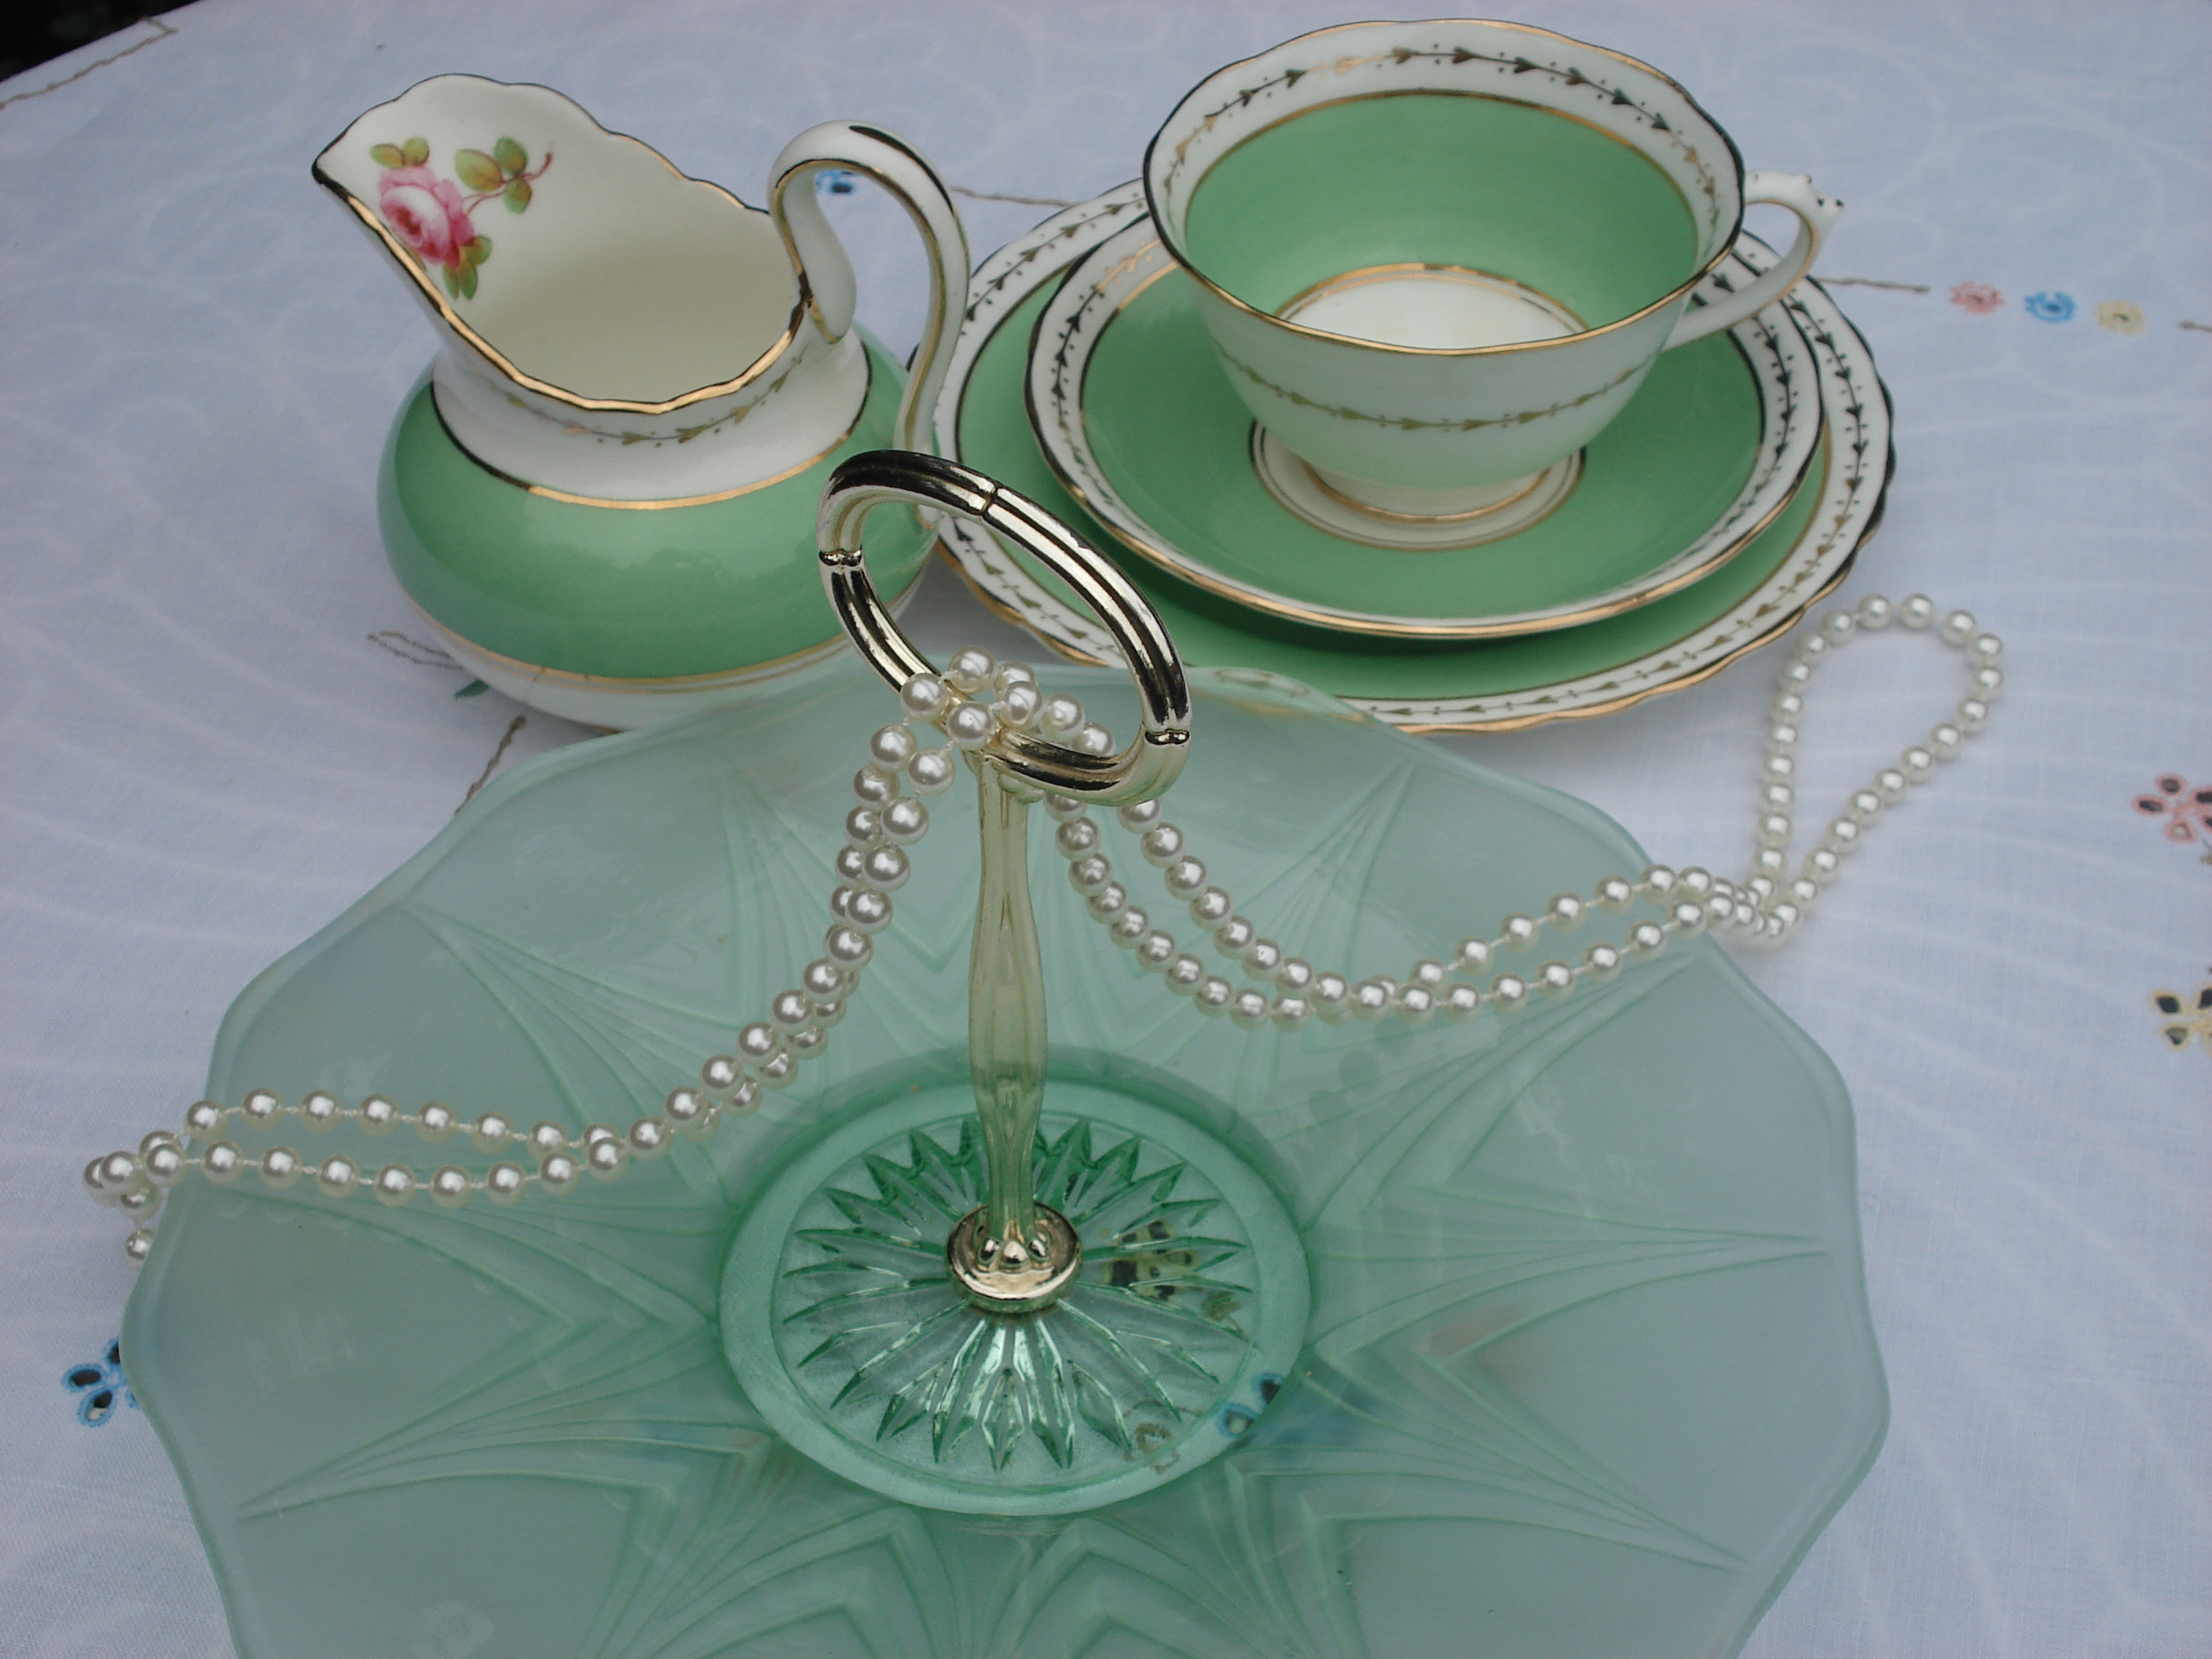 Pale Green cake plate